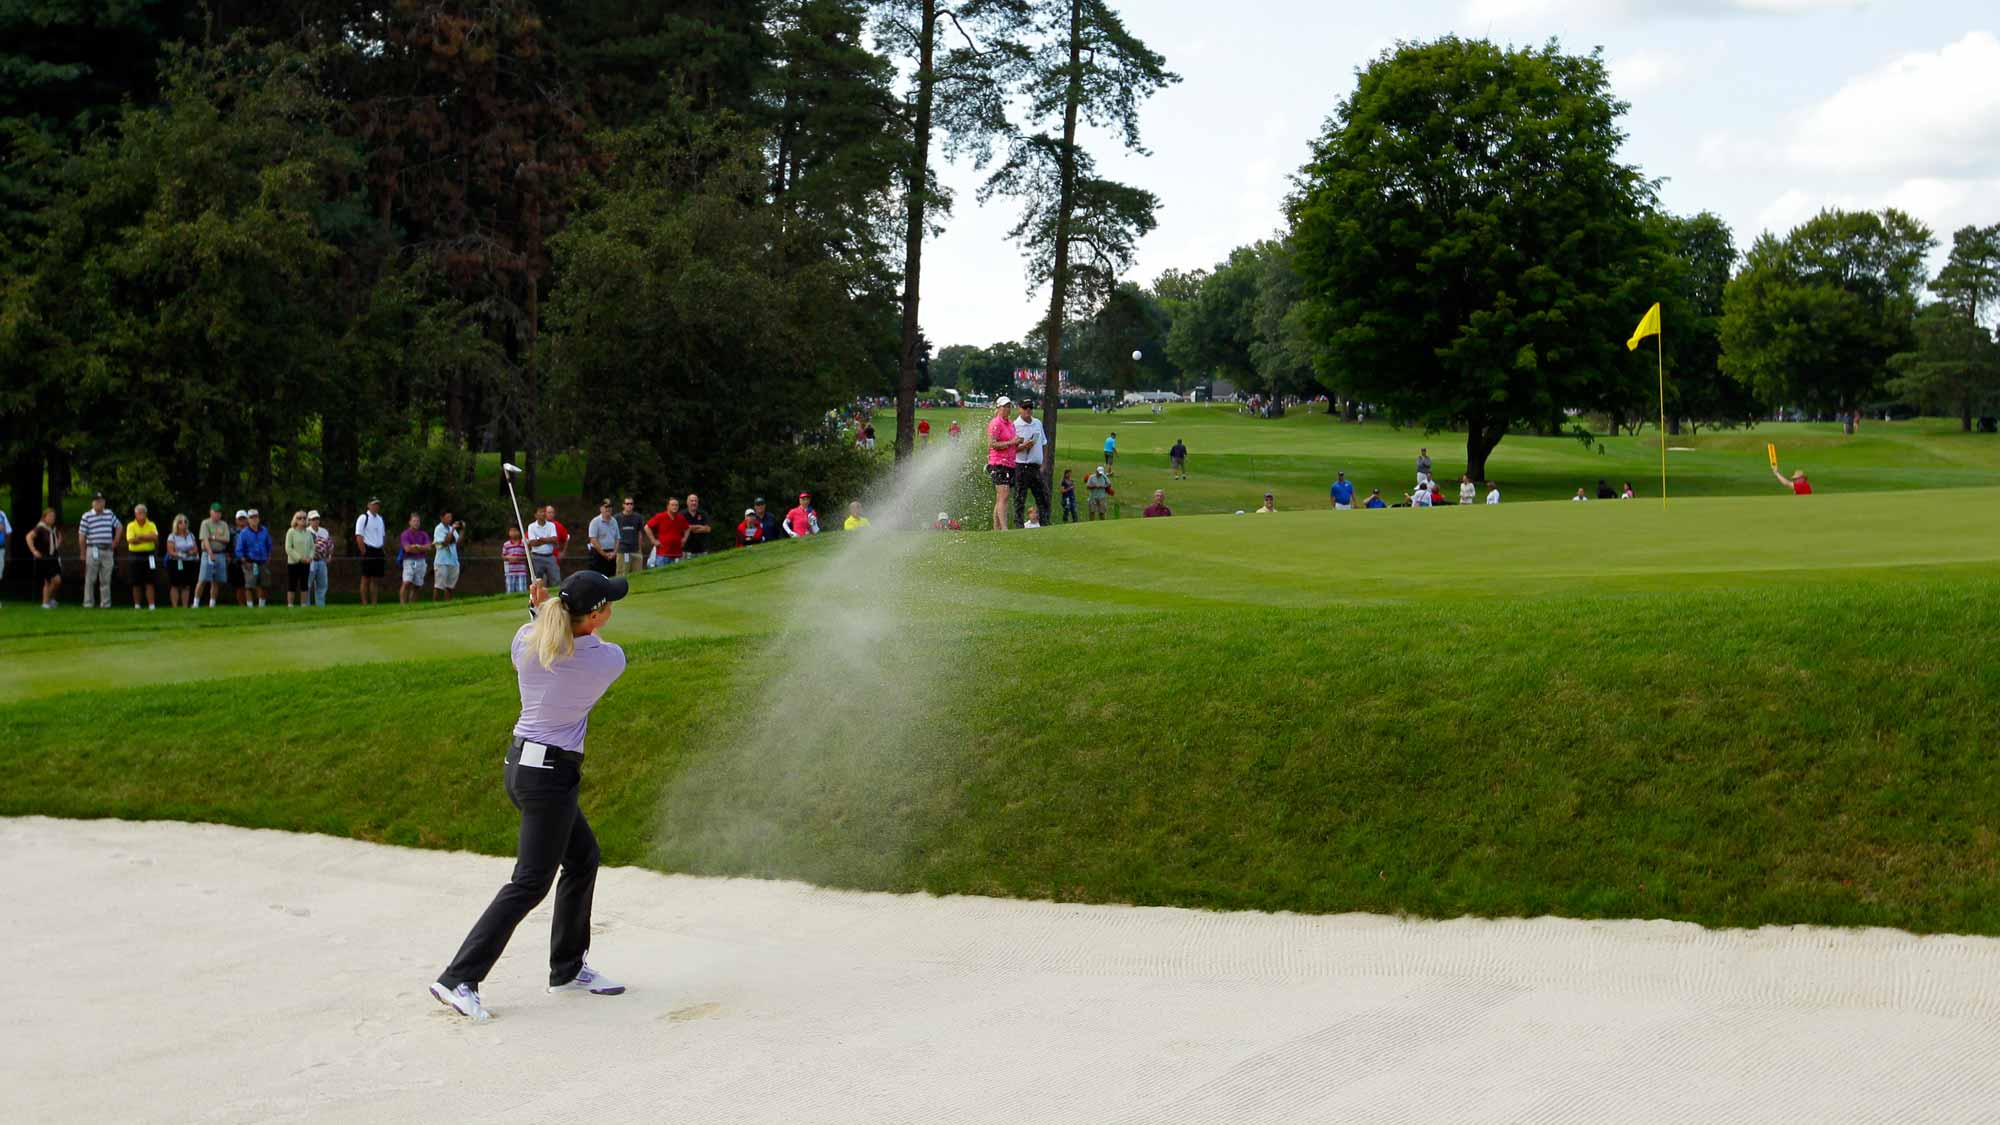 Suzann Pettersen hitting from bunker